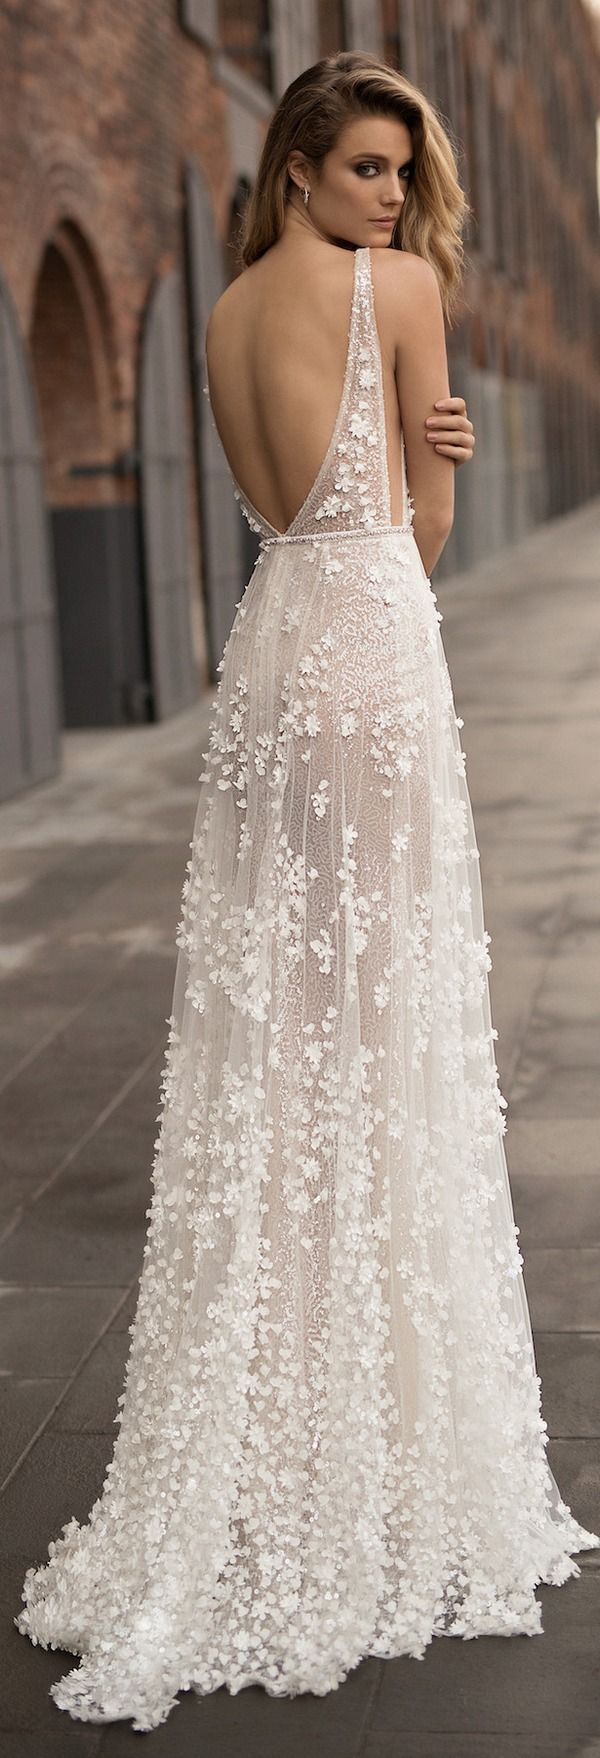 Wedding Dresses Pinterest 2018 30